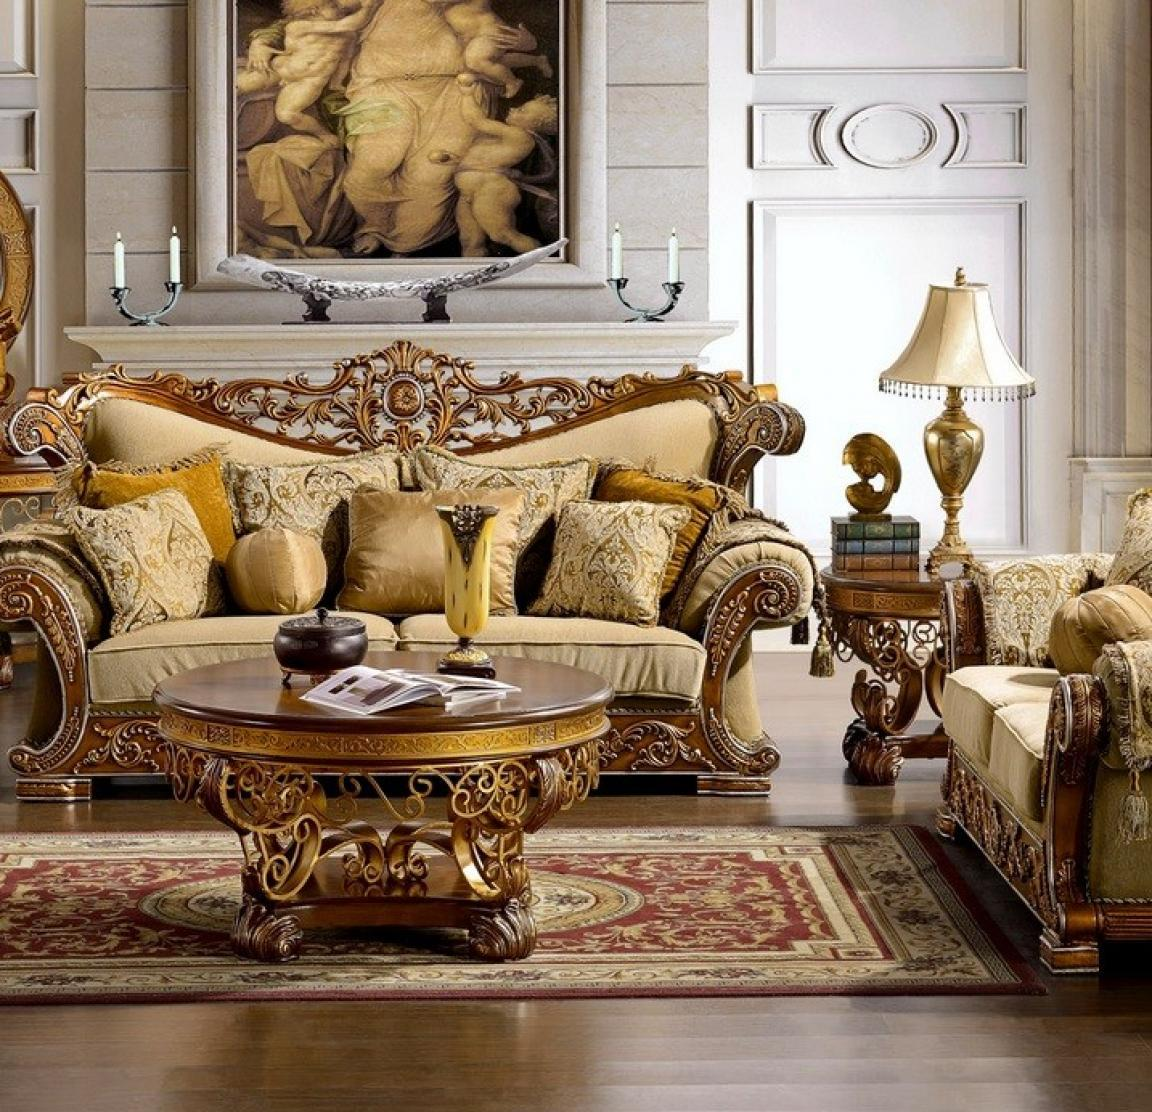 Luxury Chairs For Living Room Luxury Living Room Furnitureluxury